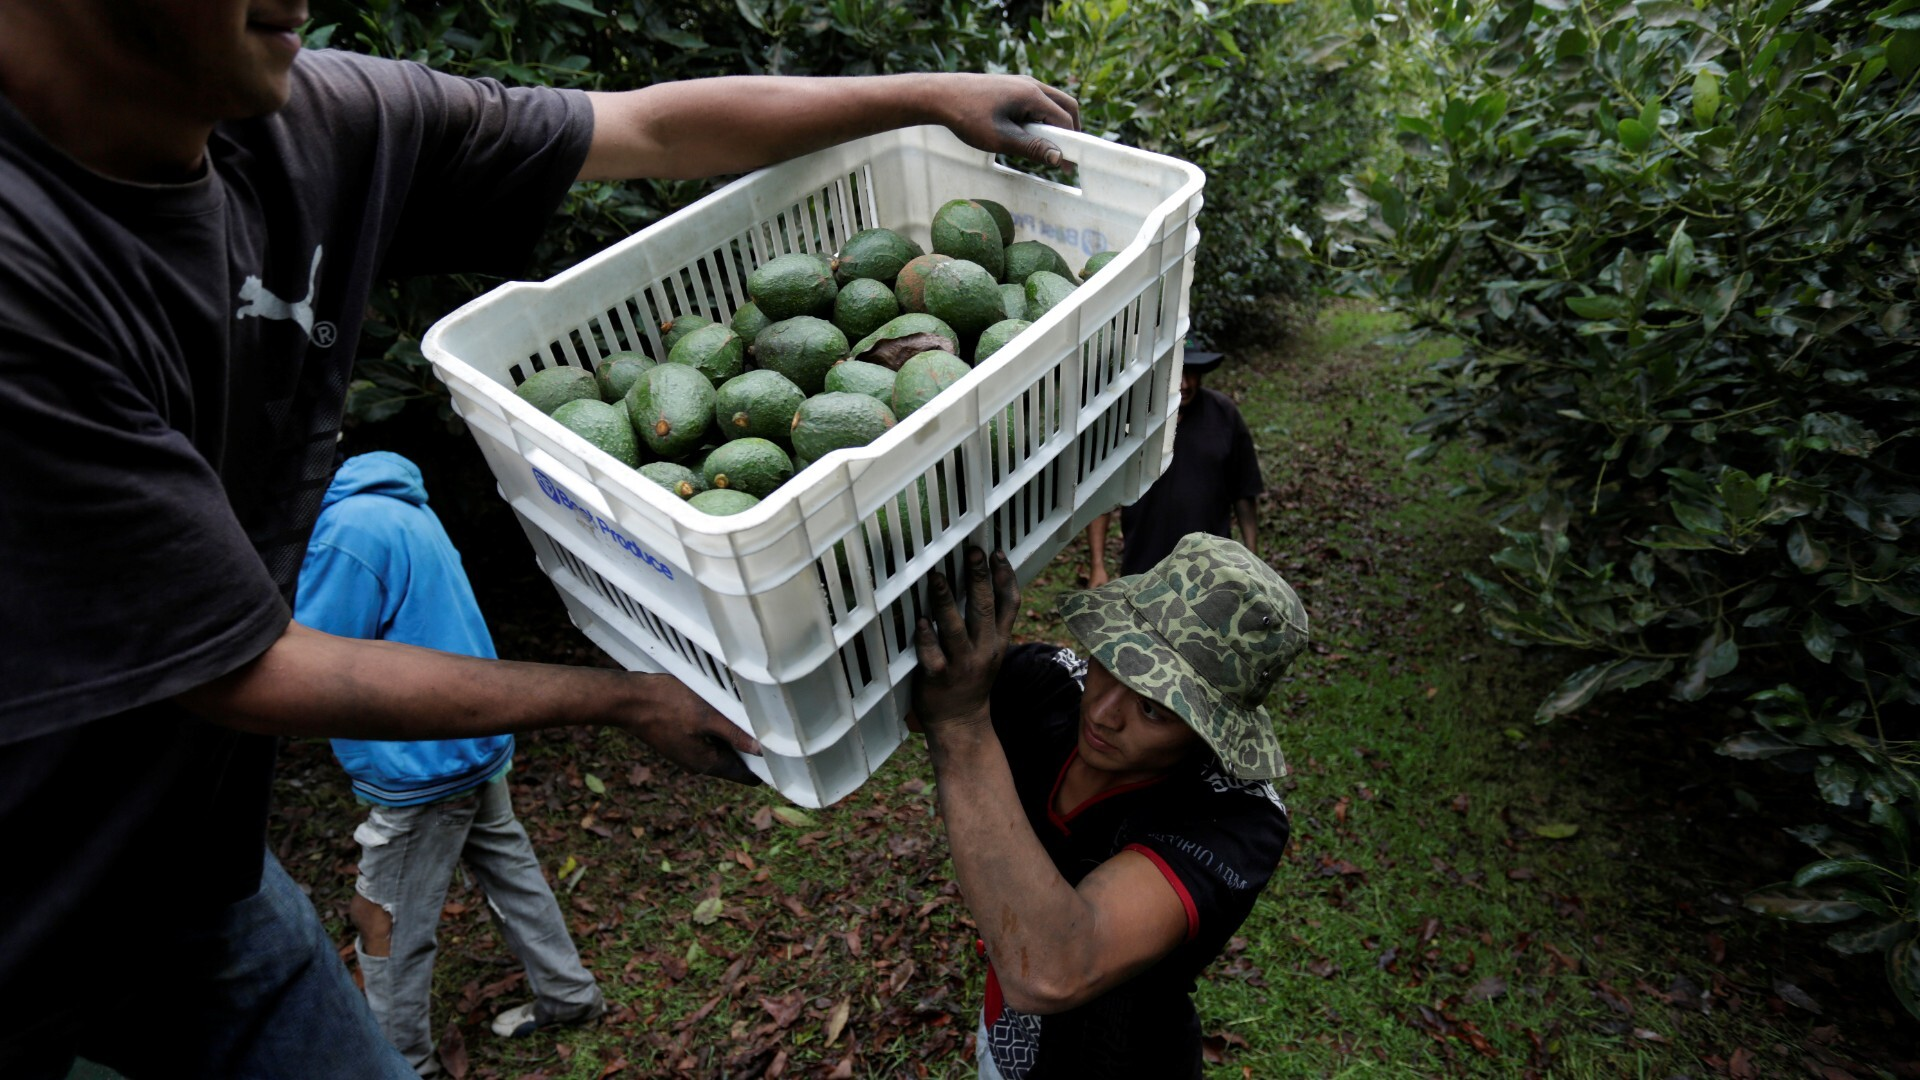 Mexico avocado war: Cartel seeks to control fruit trade